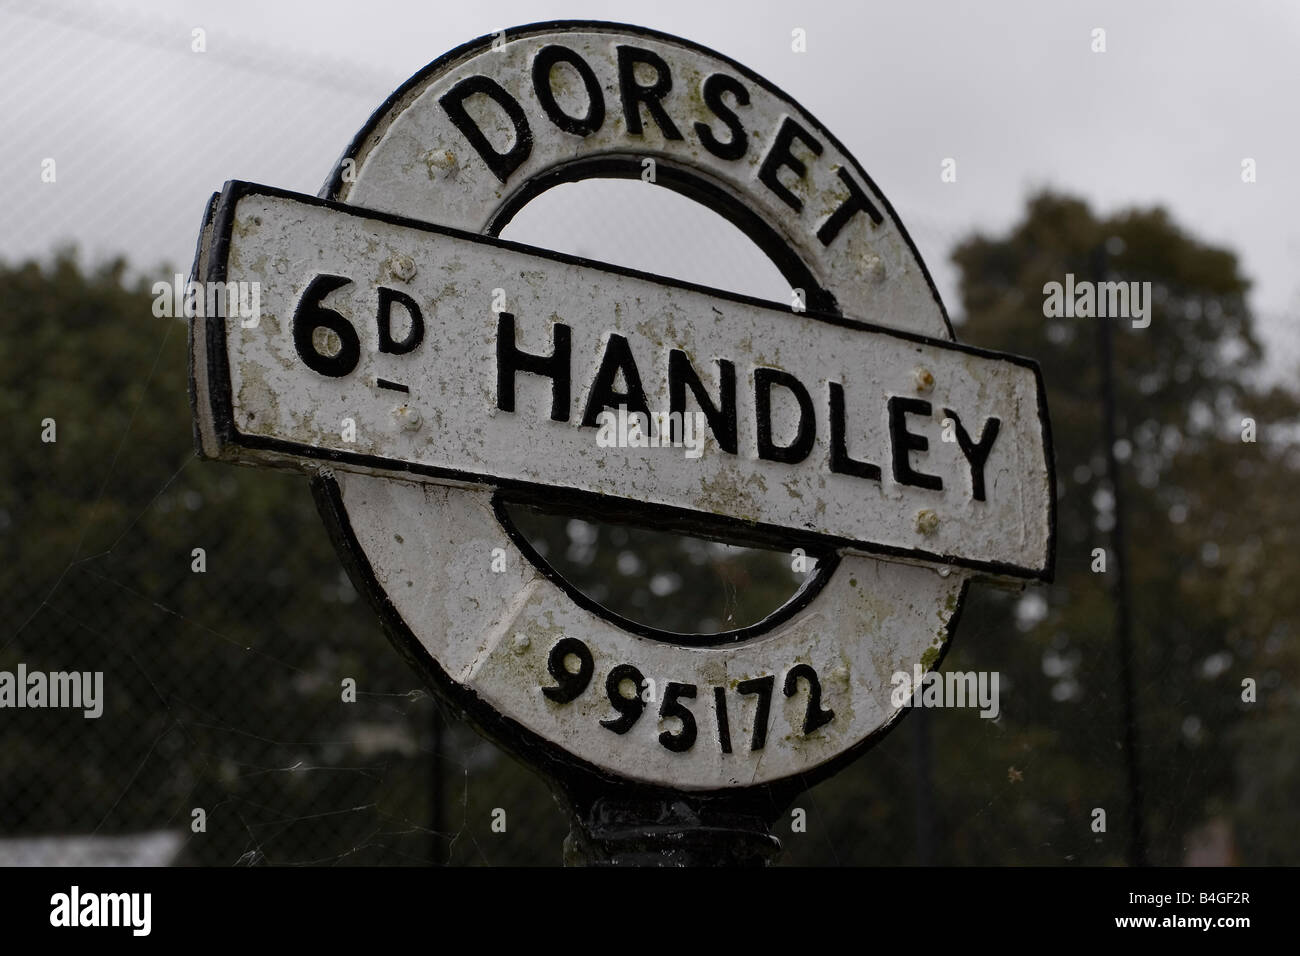 https://c8.alamy.com/comp/B4GF2R/traditional-dorset-fingerpost-sign-at-sixpenny-handley-in-dorset-with-B4GF2R.jpg